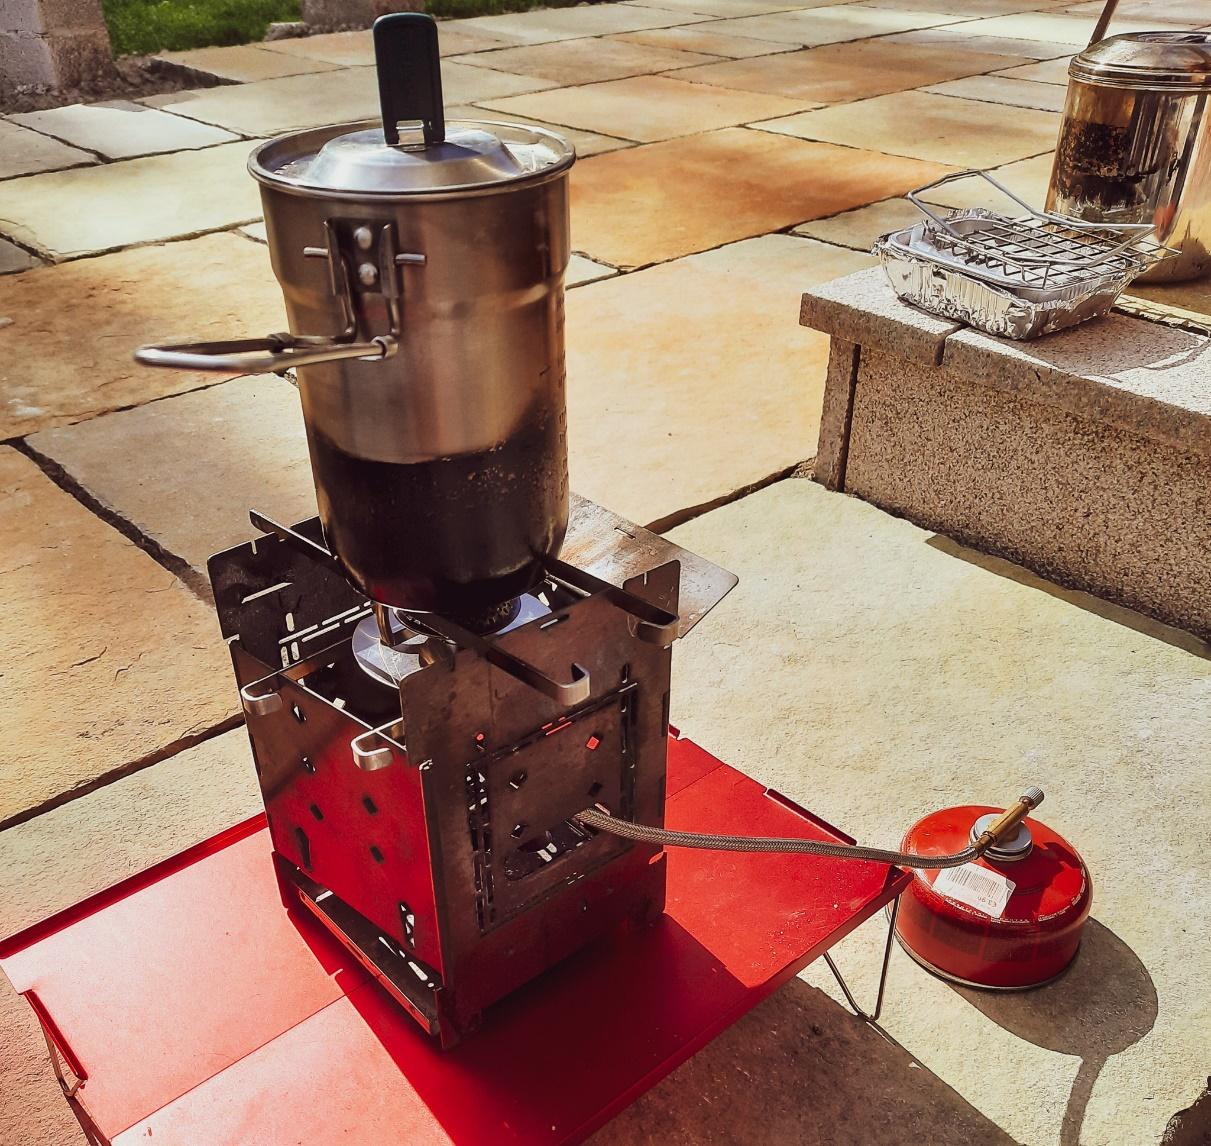 Trangia gas burner configuration supported using the firesticks